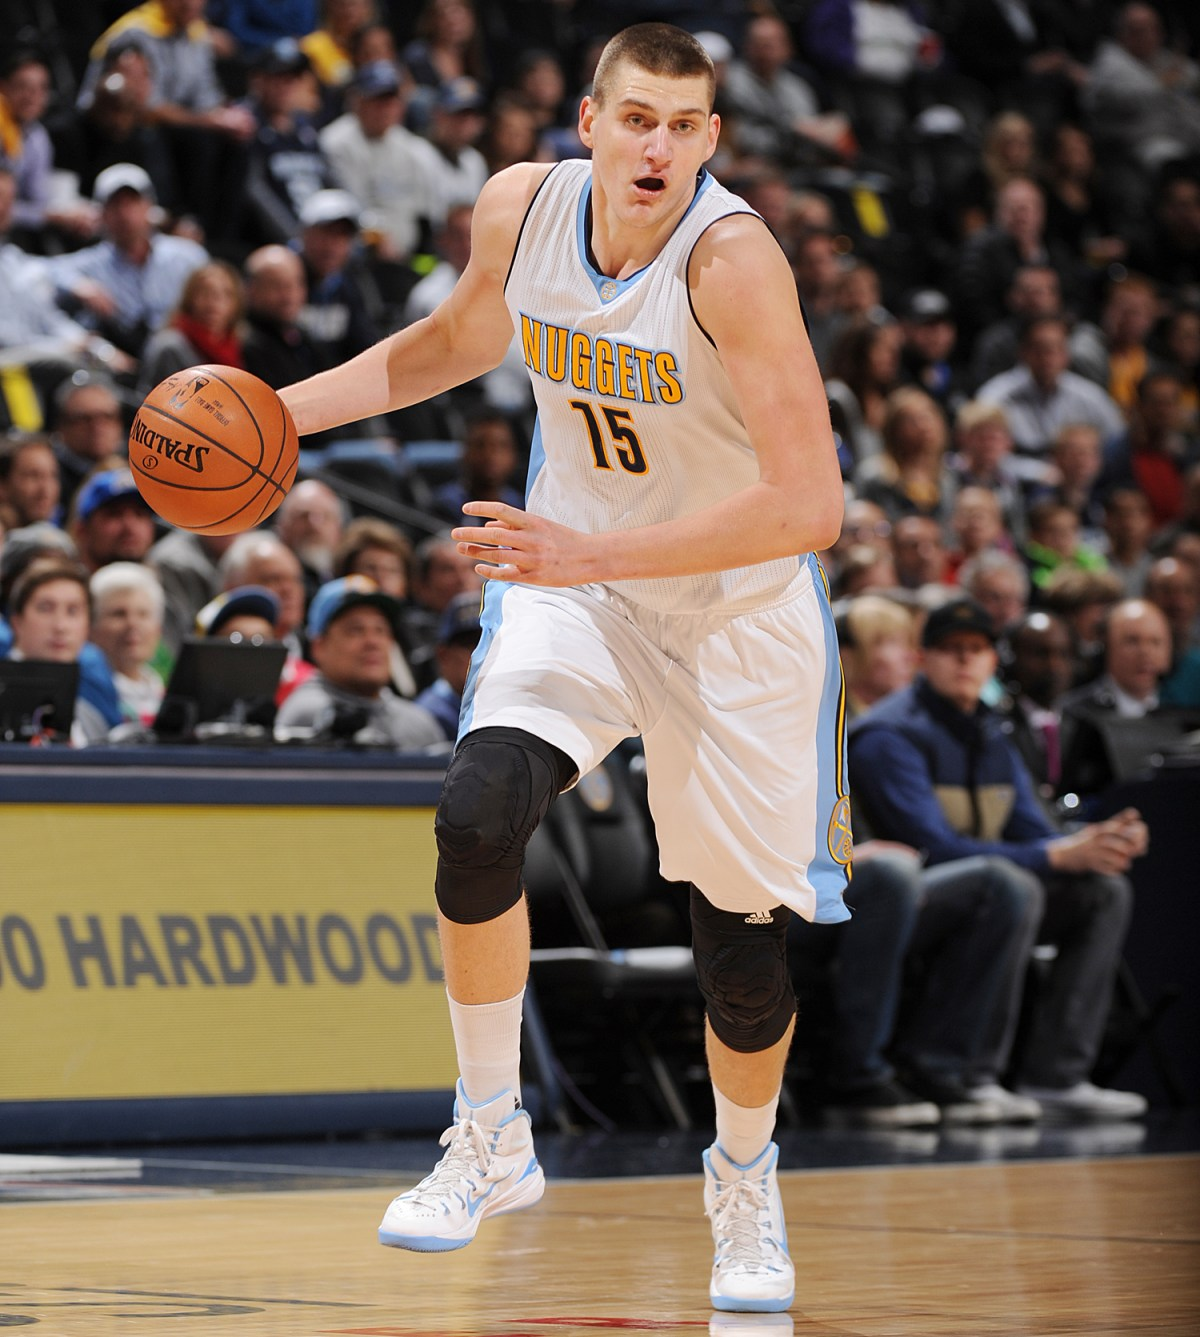 DENVER, CO - JANUARY 21: Nikola Jokic #15 of the Denver Nuggets handles the ball against the Memphis Grizzlies on January 21, 2016 at the Pepsi Center in Denver, Colorado. NOTE TO USER: User expressly acknowledges and agrees that, by downloading and/or using this Photograph, user is consenting to the terms and conditions of the Getty Images License Agreement. Mandatory Copyright Notice: Copyright 2016 NBAE (Photo by Garrett Ellwood/NBAE via Getty Images)